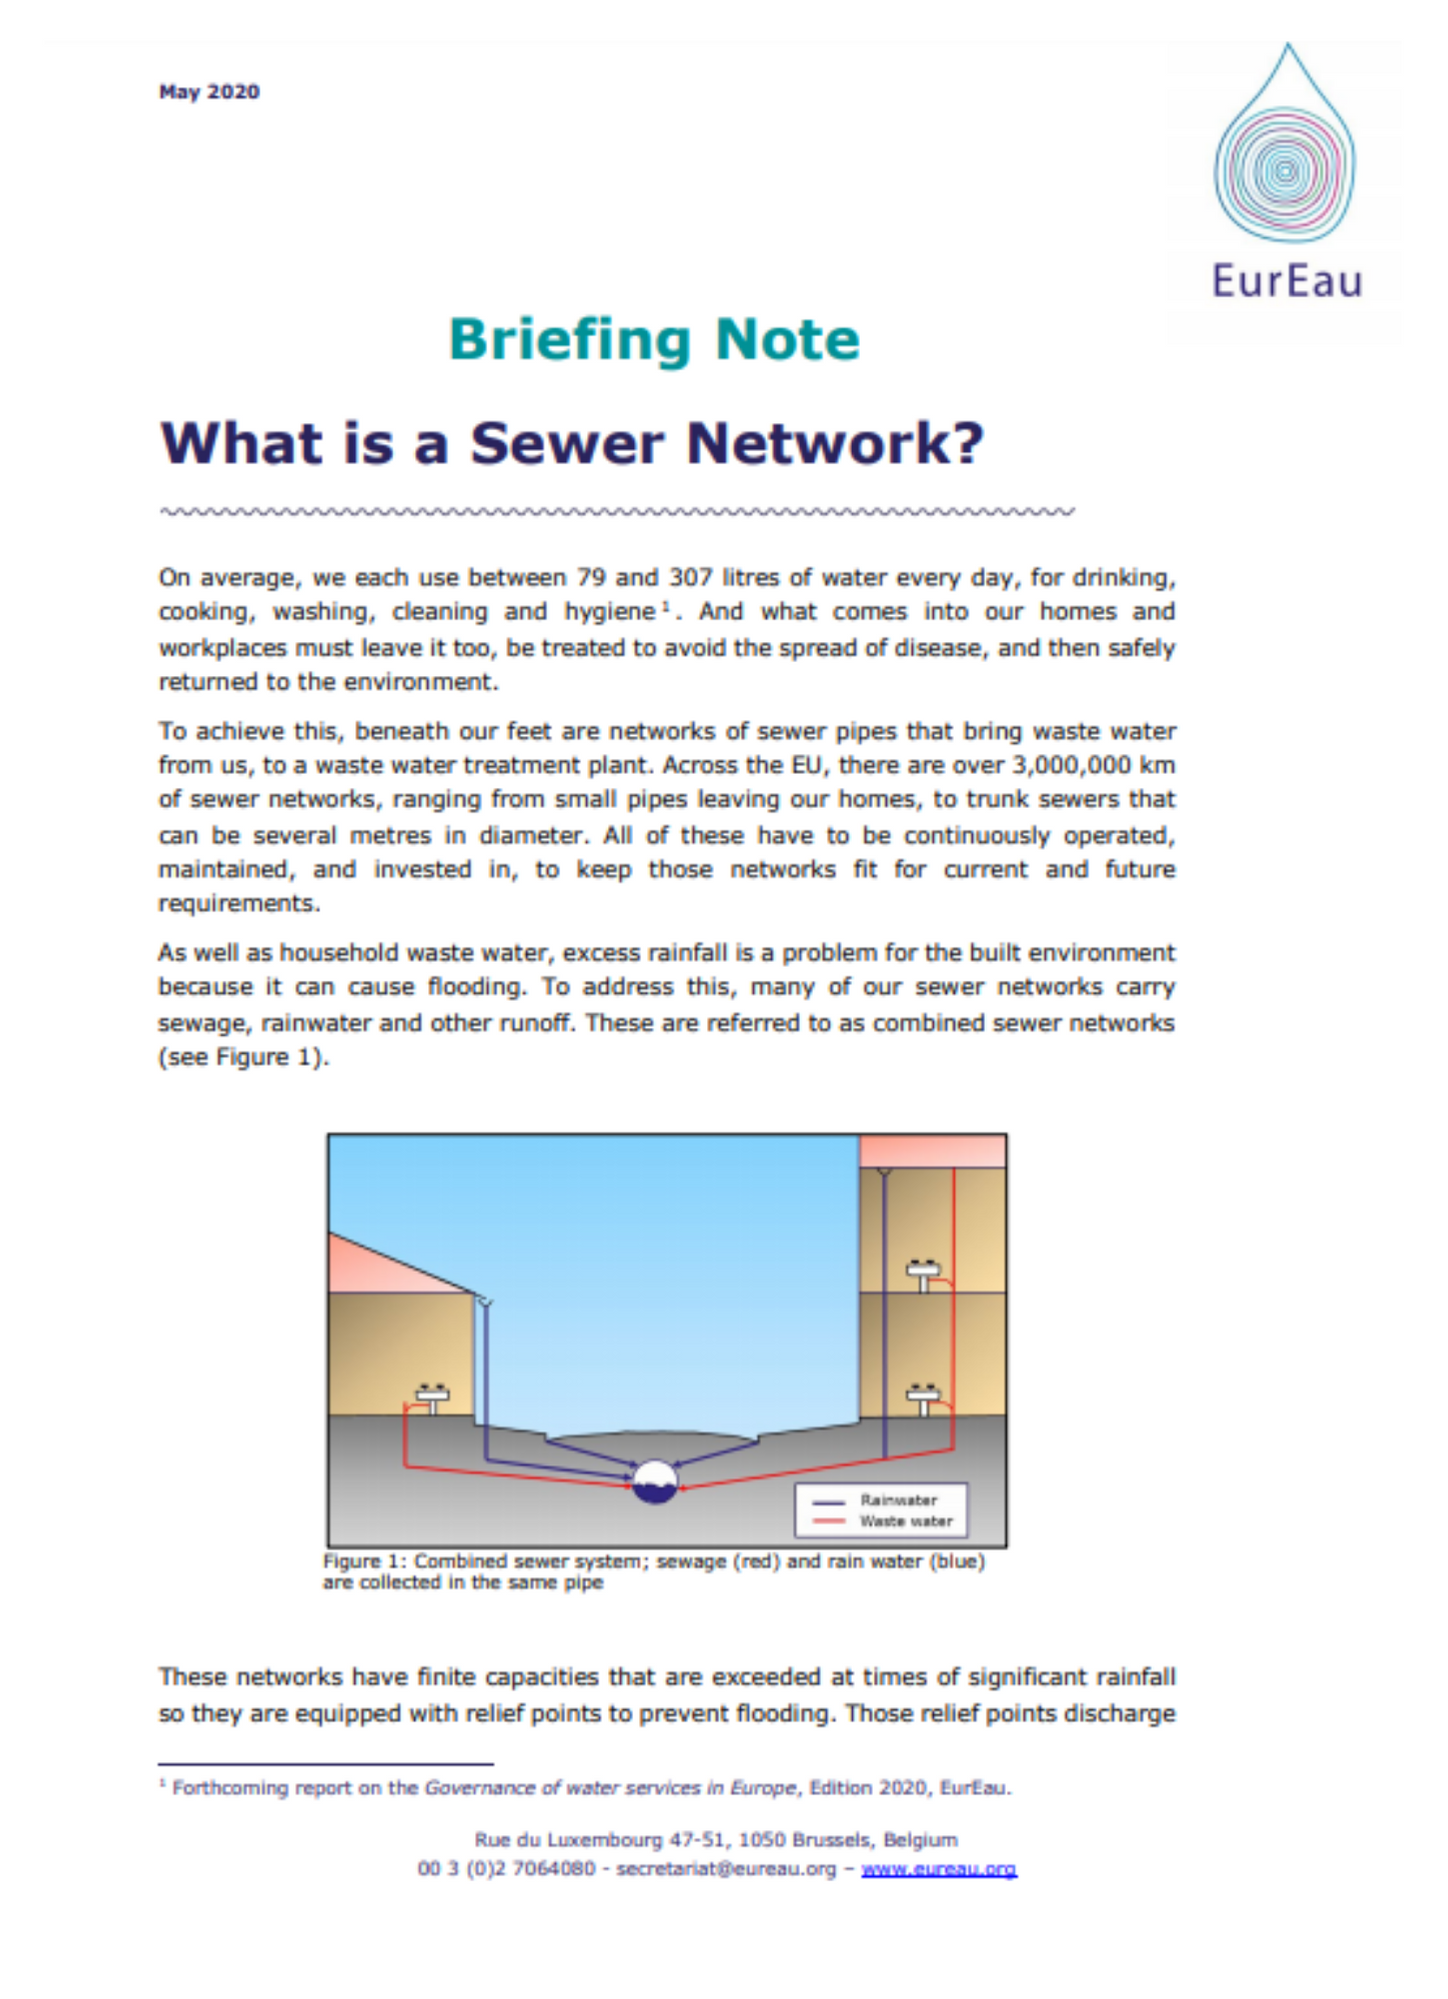 Briefing note on what is a sewer network